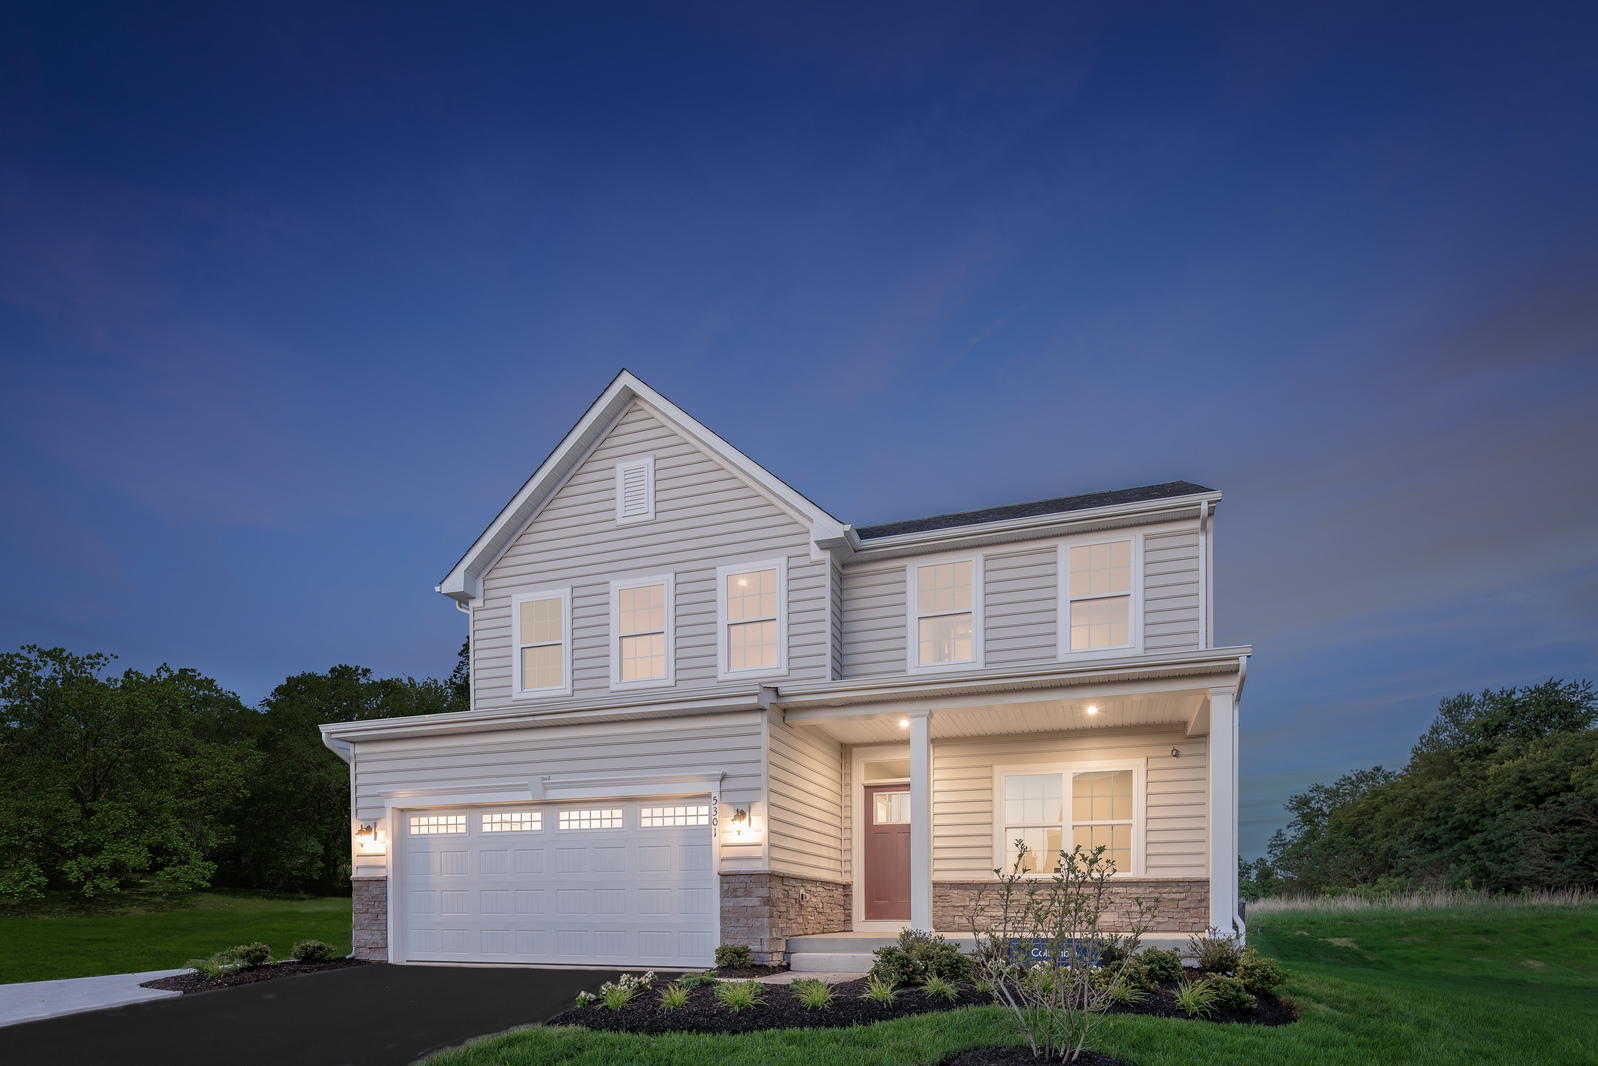 New Columbia Home Model For Sale At Silverwood In Yorktown Va